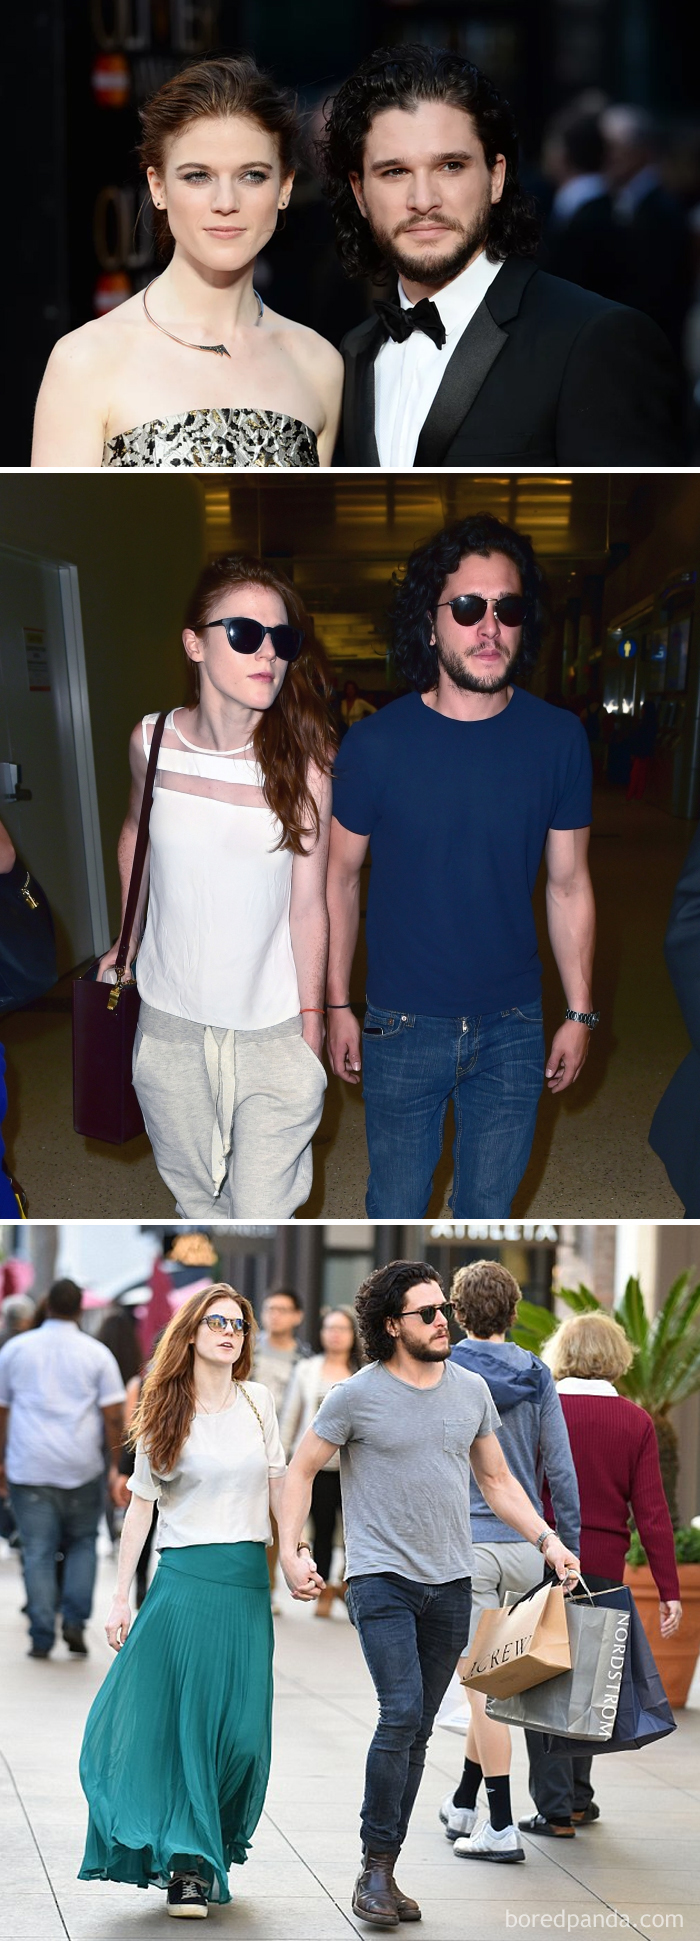 game-of-thrones-actors-real-life-partners-4-59b0fc2ea8598__700